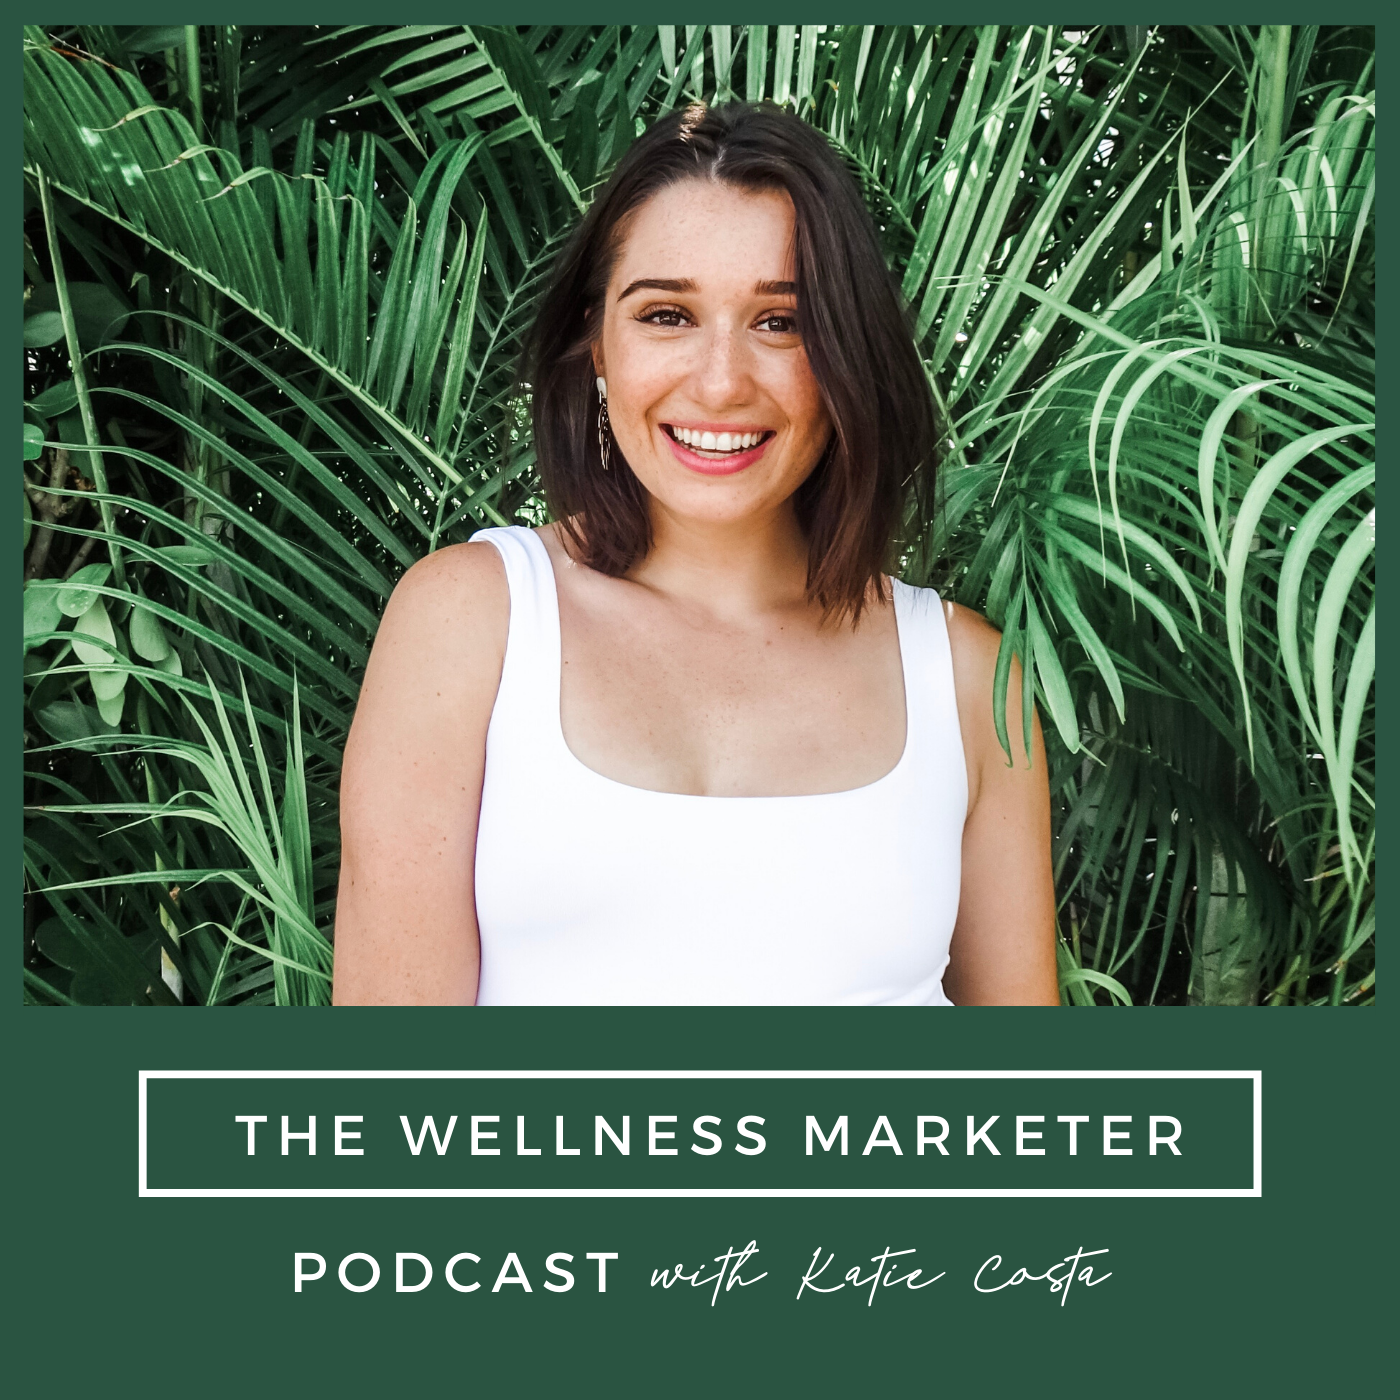 The Wellness Marketer Podcast